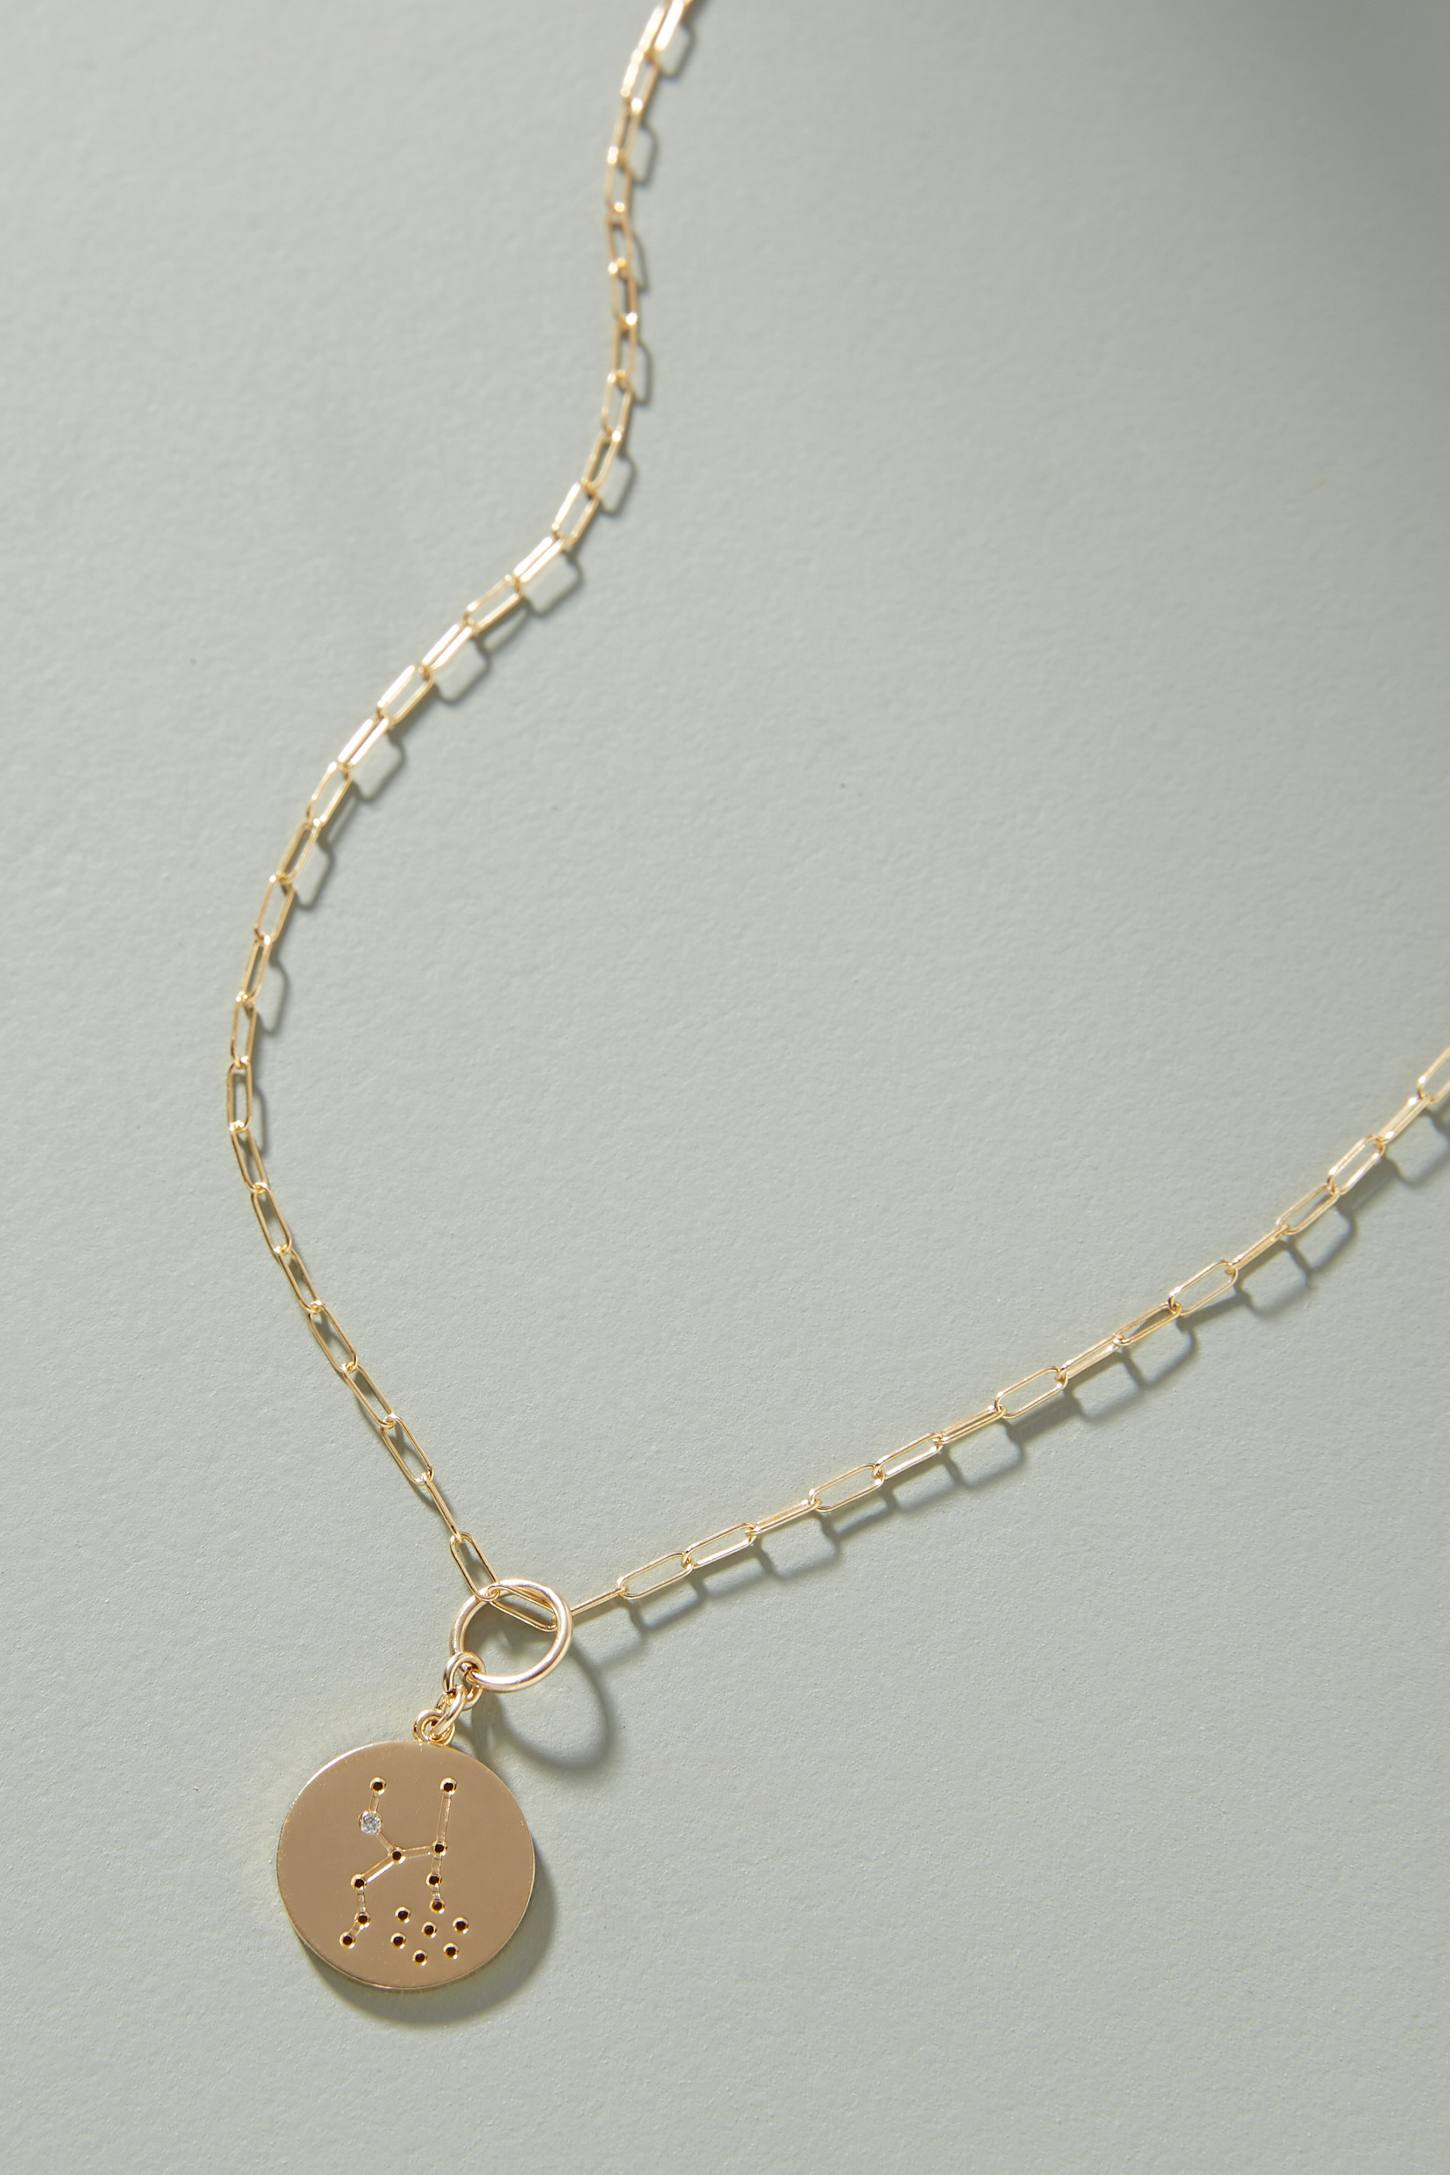 Small Dainty Necklaces For Women To Wear This Summer